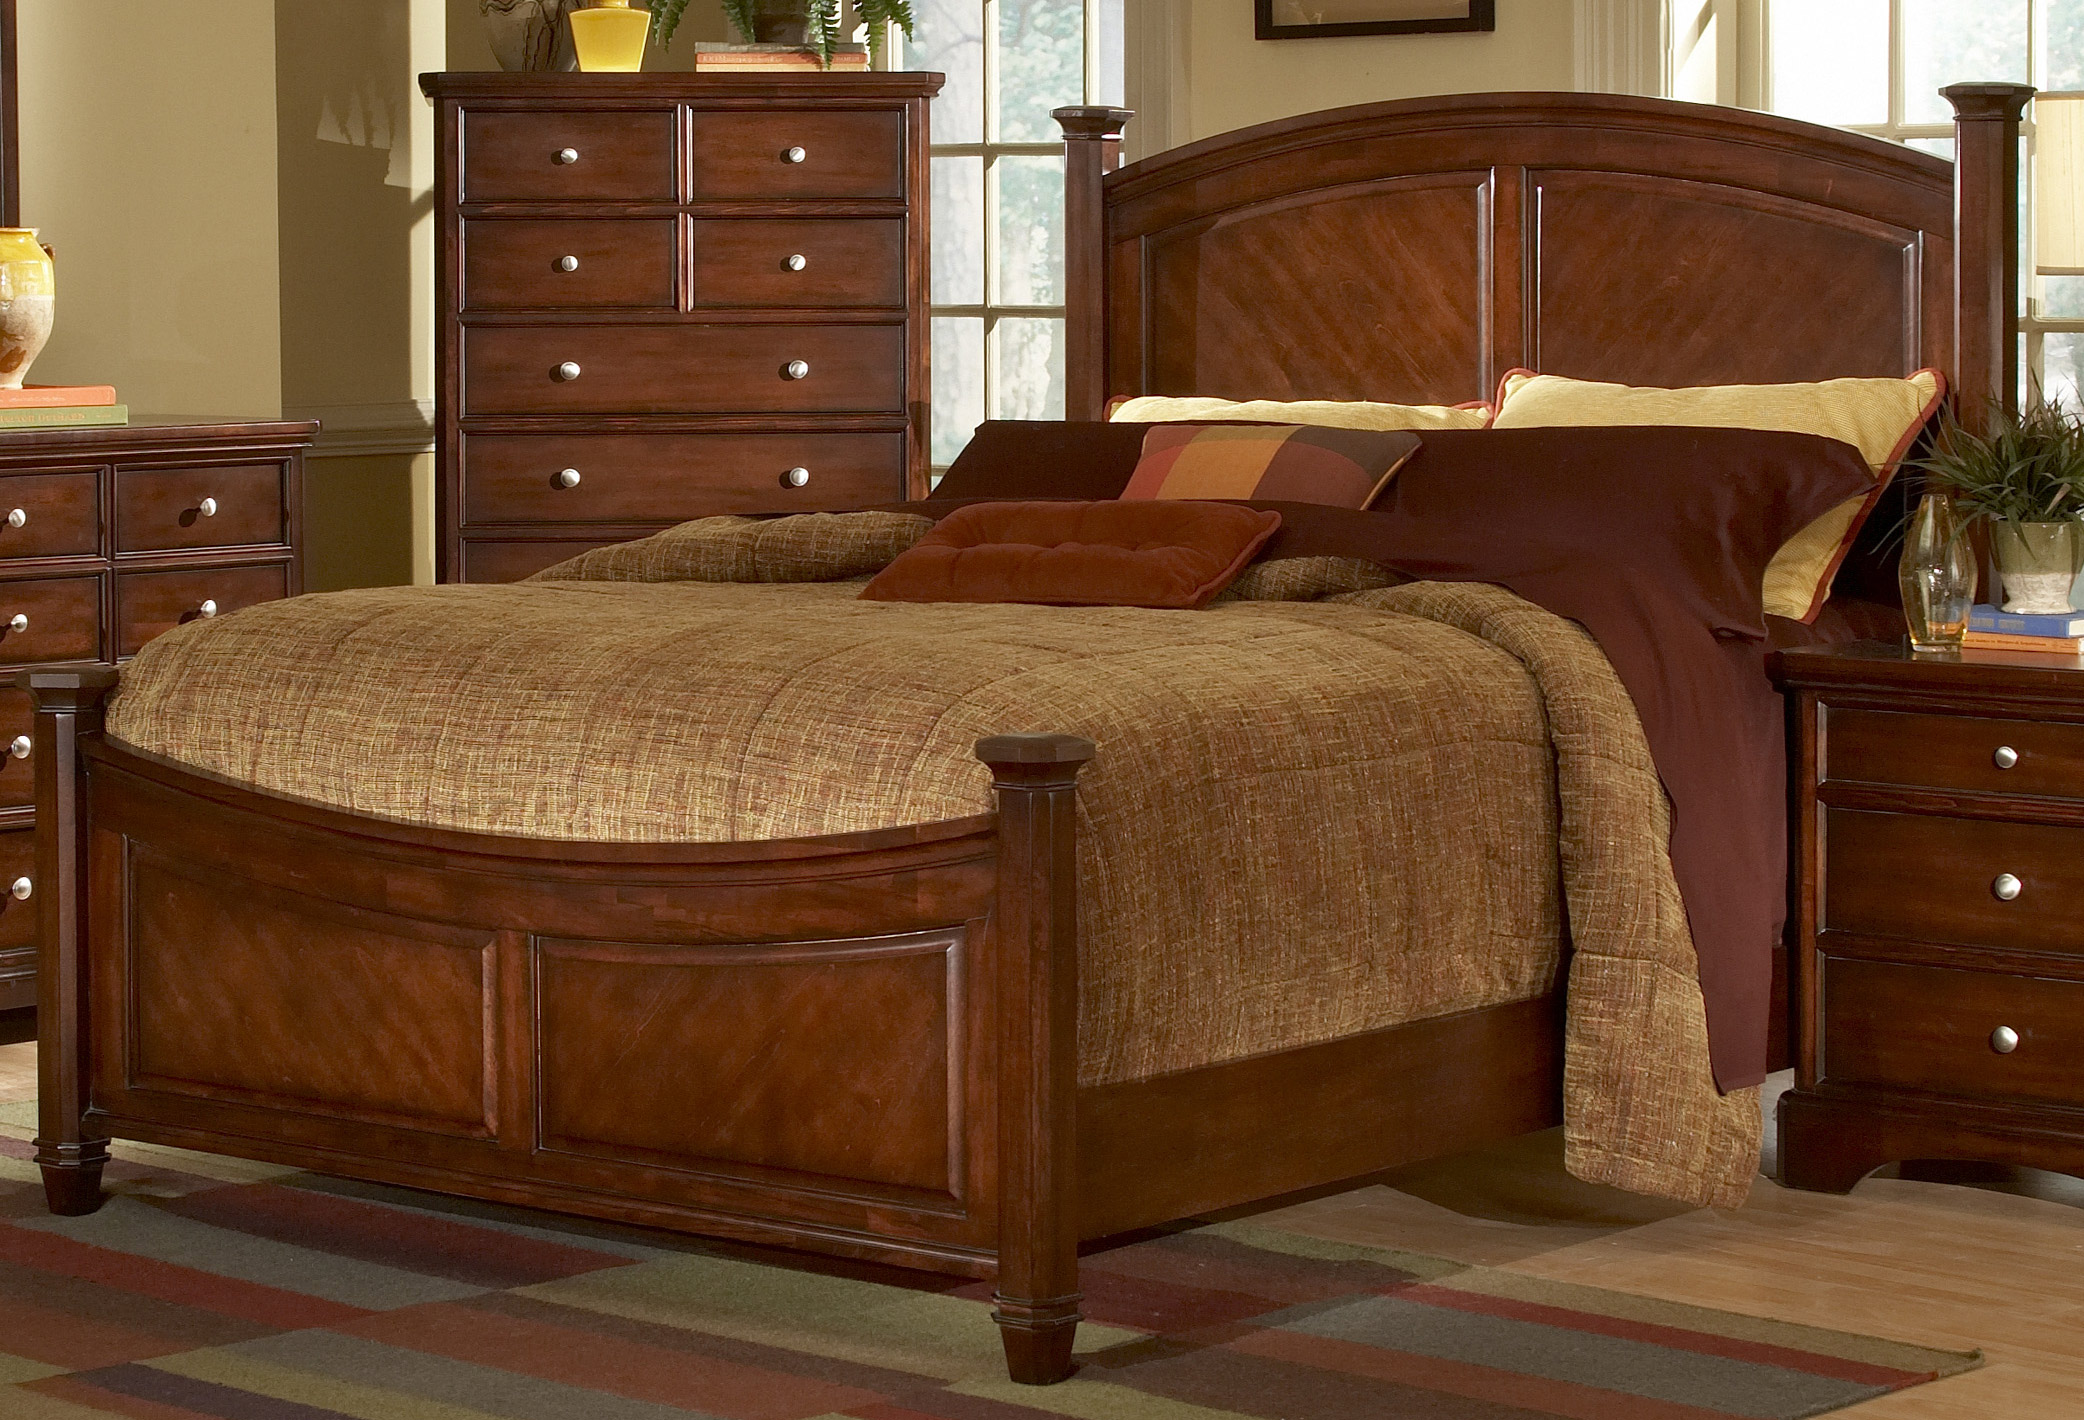 Homelegance Laurel Heights Bed Cherry 982c 1